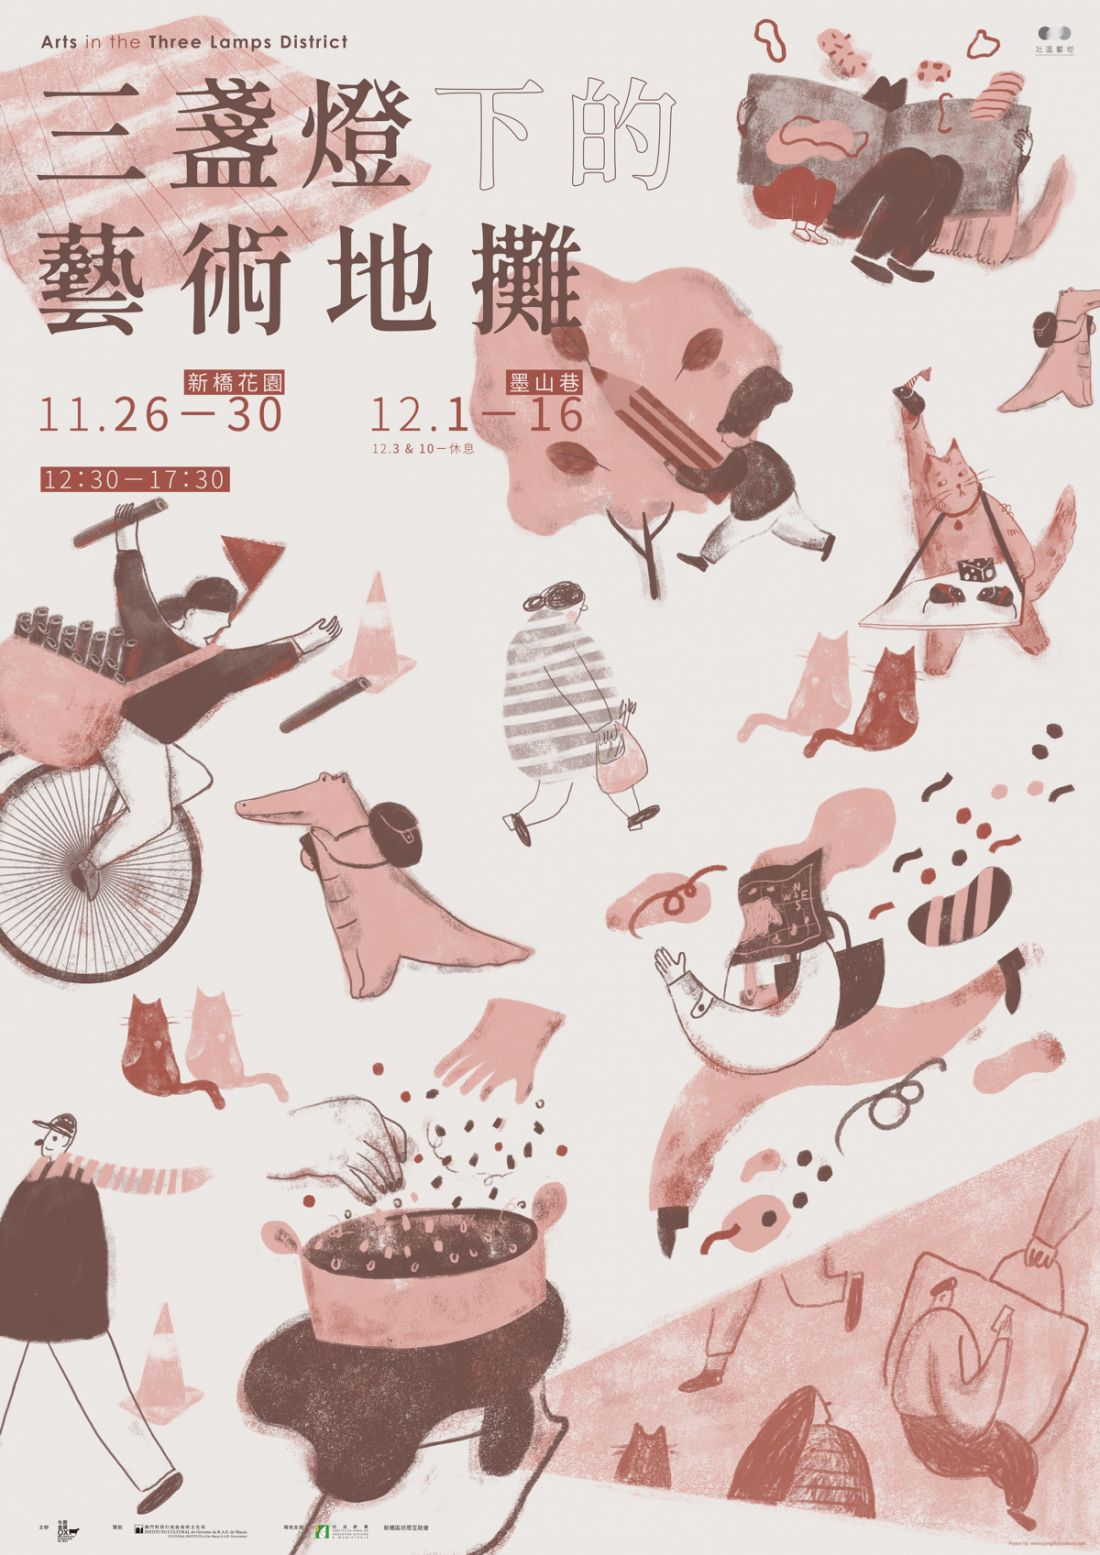 Yang Illustration, Arts in the Three Lamps District – New Talent Advertising Category Winner